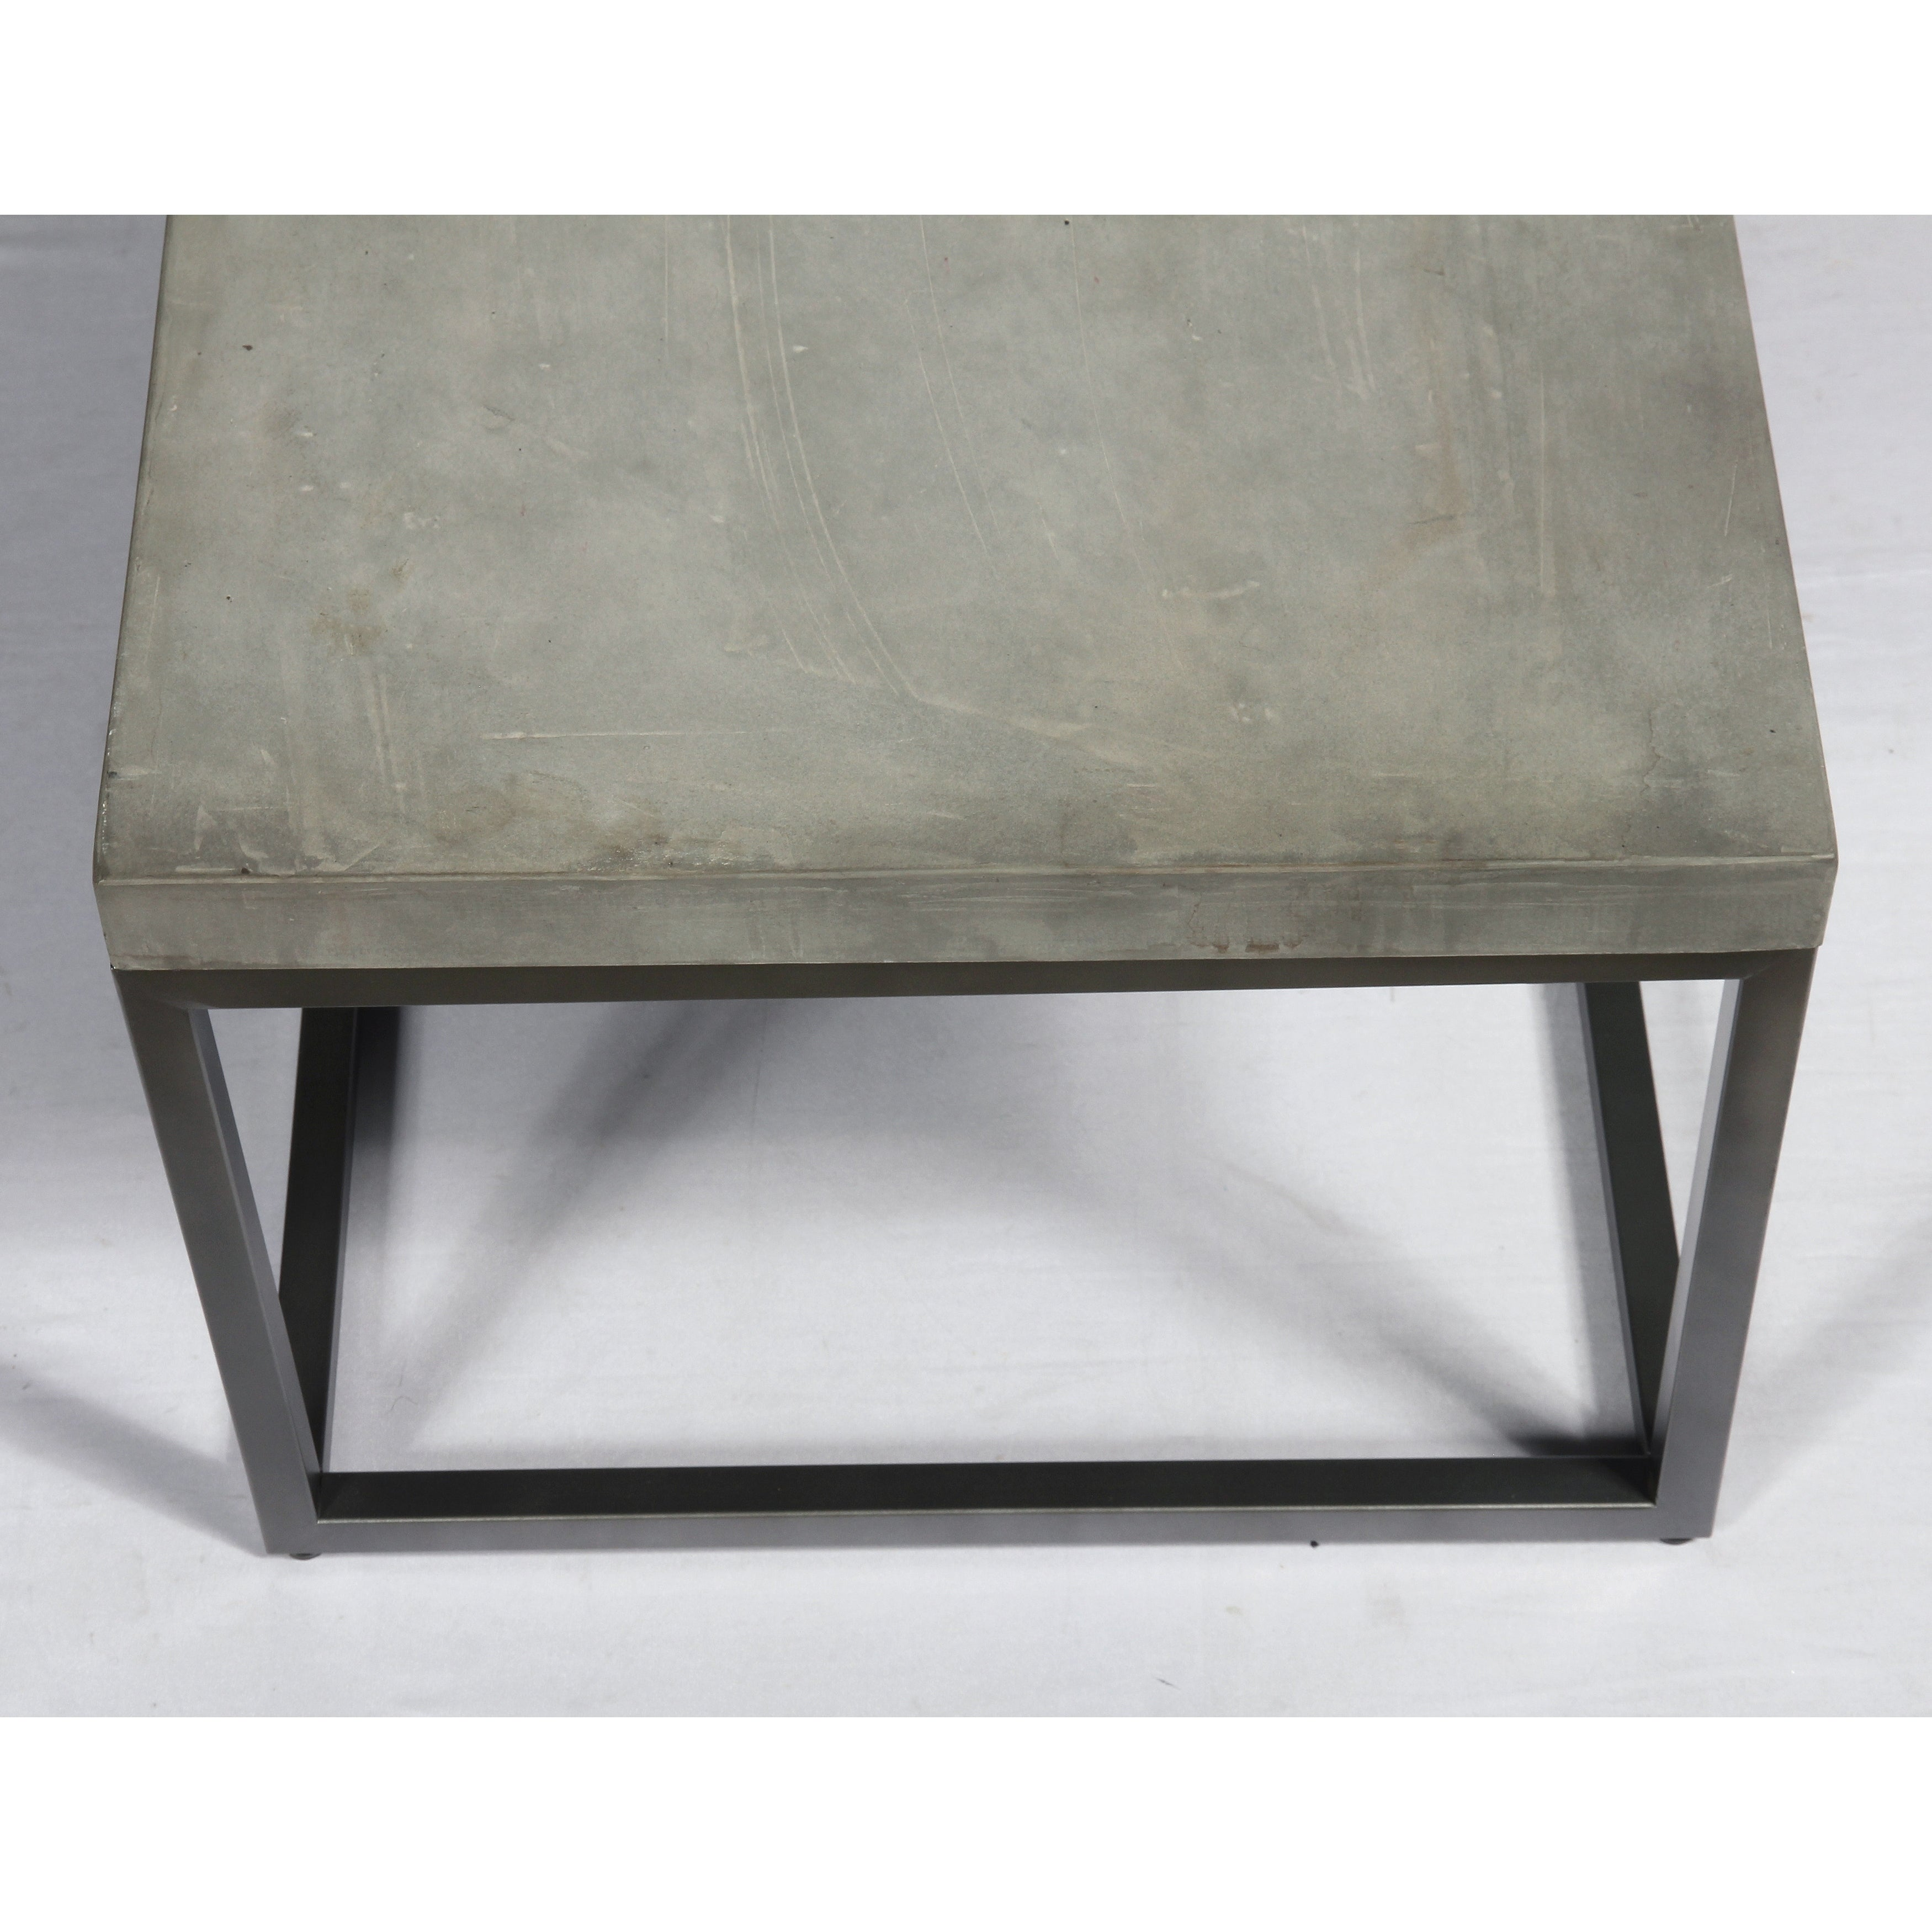 Awesome Emerald Home Onyx Concrete Finish Sofa Table Theyellowbook Wood Chair Design Ideas Theyellowbookinfo